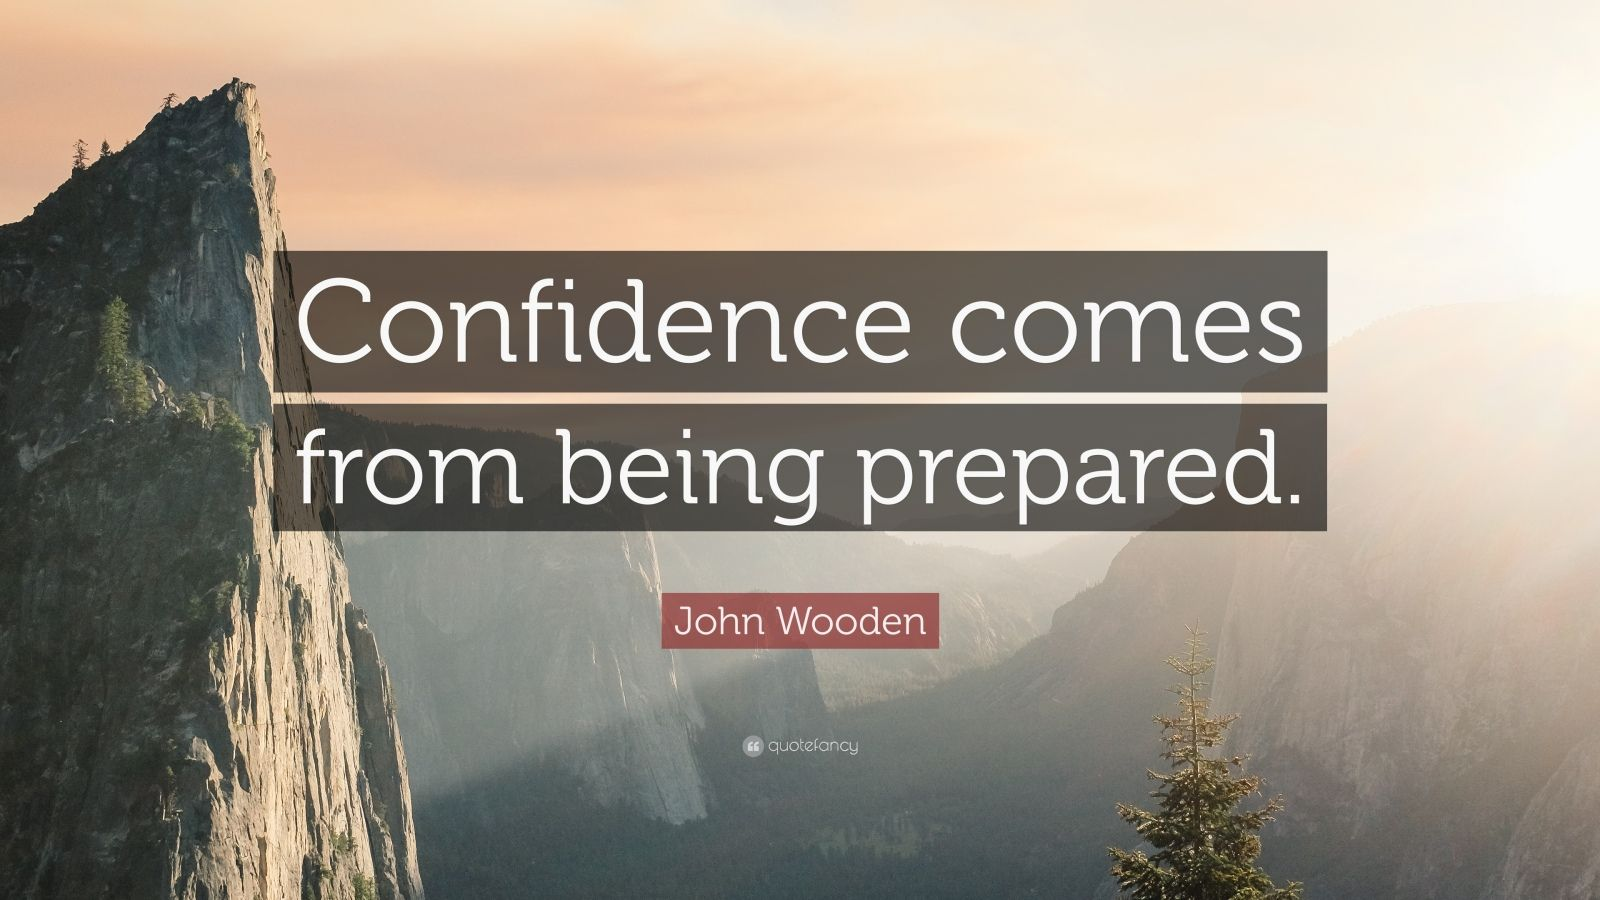 Theodore Roosevelt Quotes Wallpaper John Wooden Quote Confidence Comes From Being Prepared